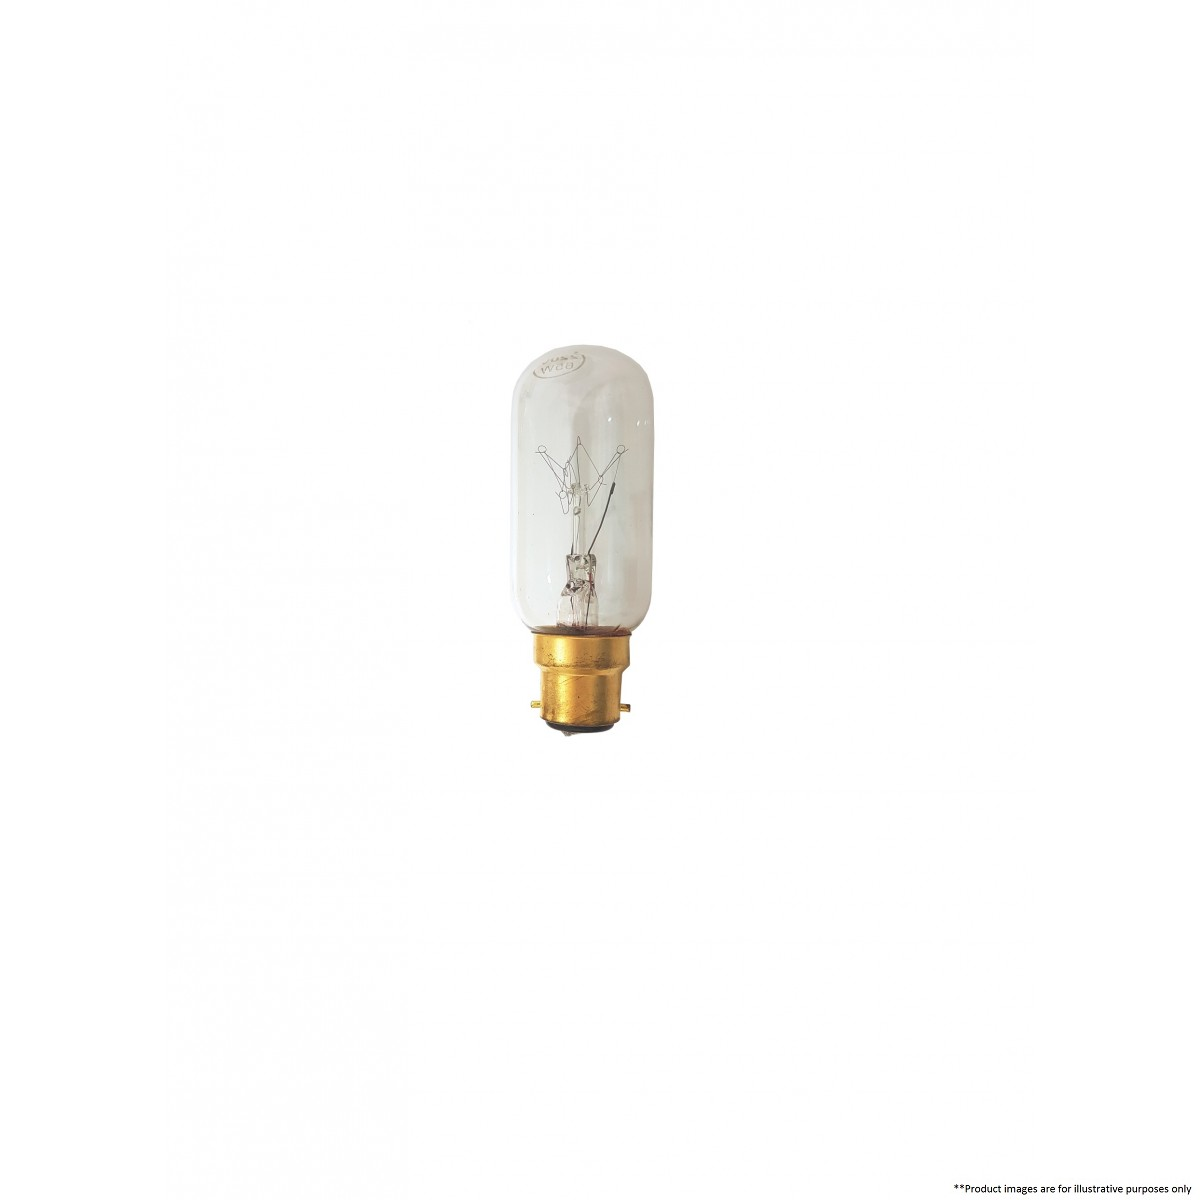 B22 NAVIGATION LAMP - Lamps and Bulbs - Accessories - By